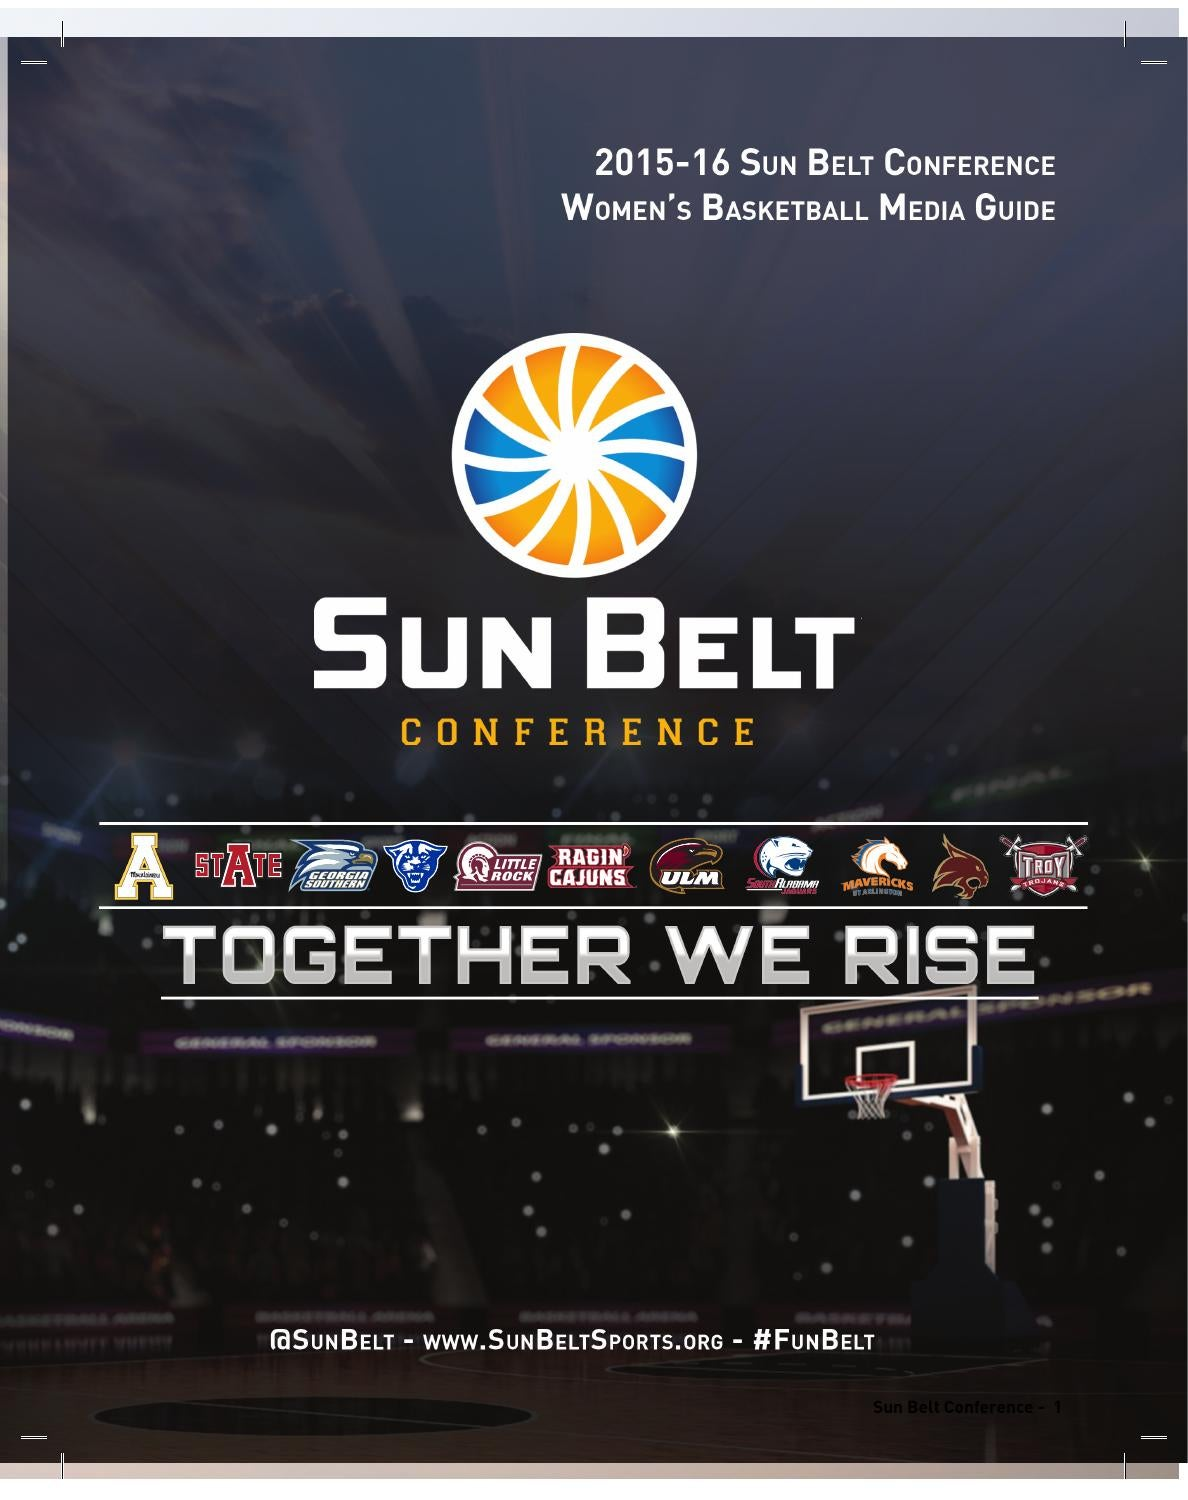 cc7146cb296 2015-16 Sun Belt Women s Basketball Media Guide by Keith Nunez - issuu